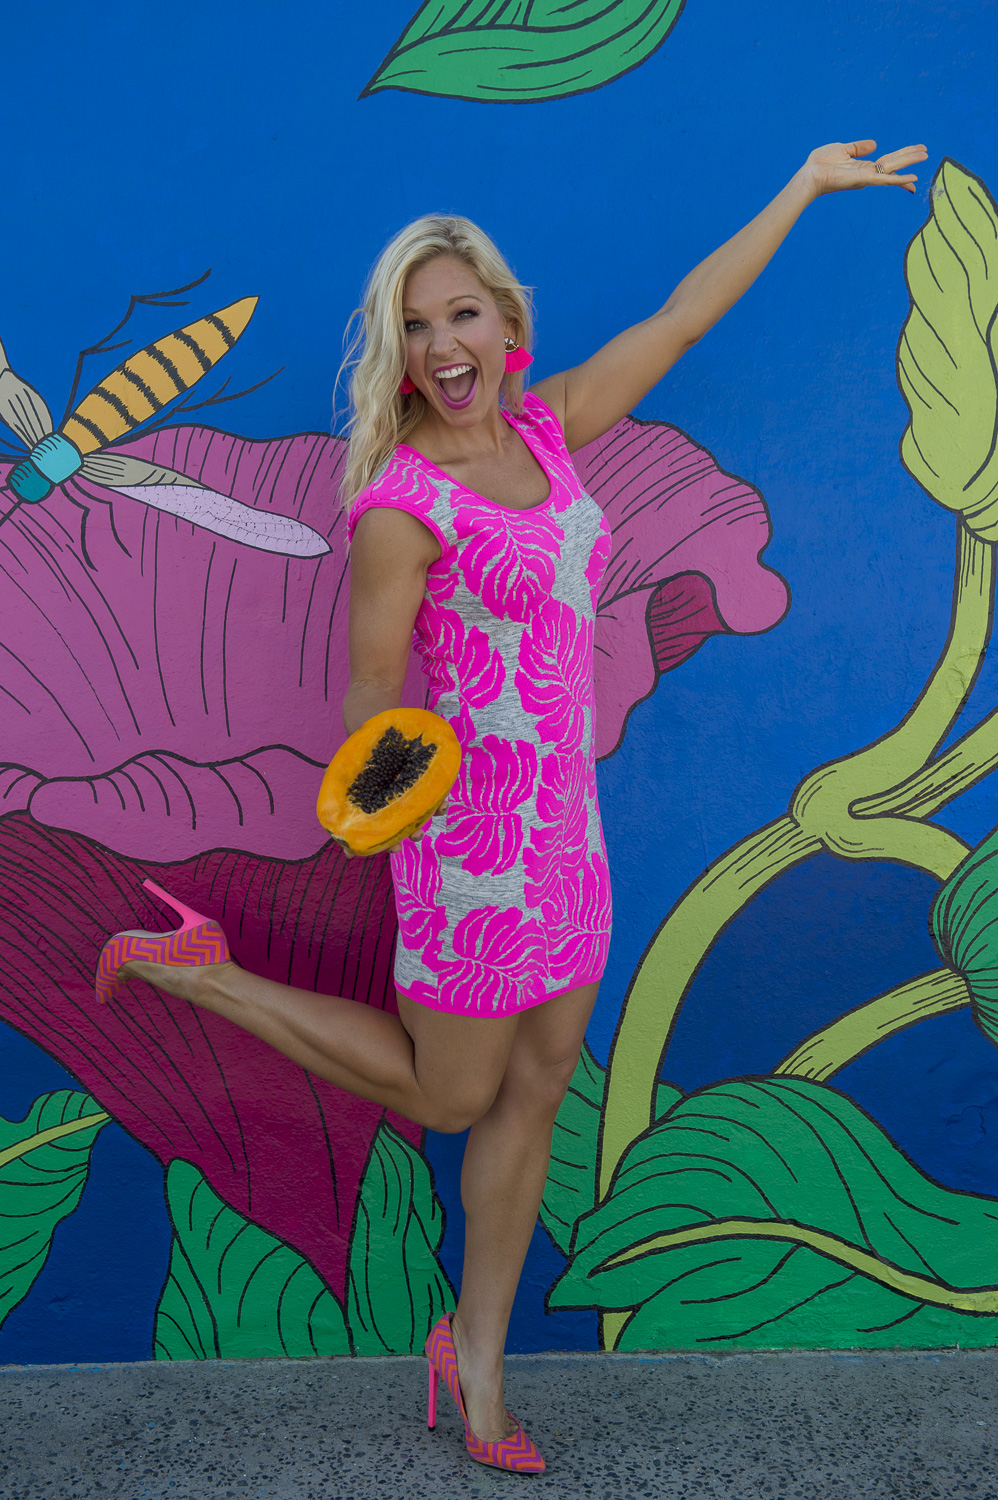 https://www.annakooiman.com/dress-to-impress/pretty-pink-palm-dress-hot-pink-heels-pink-fan-earrings-and-fresh-papaya